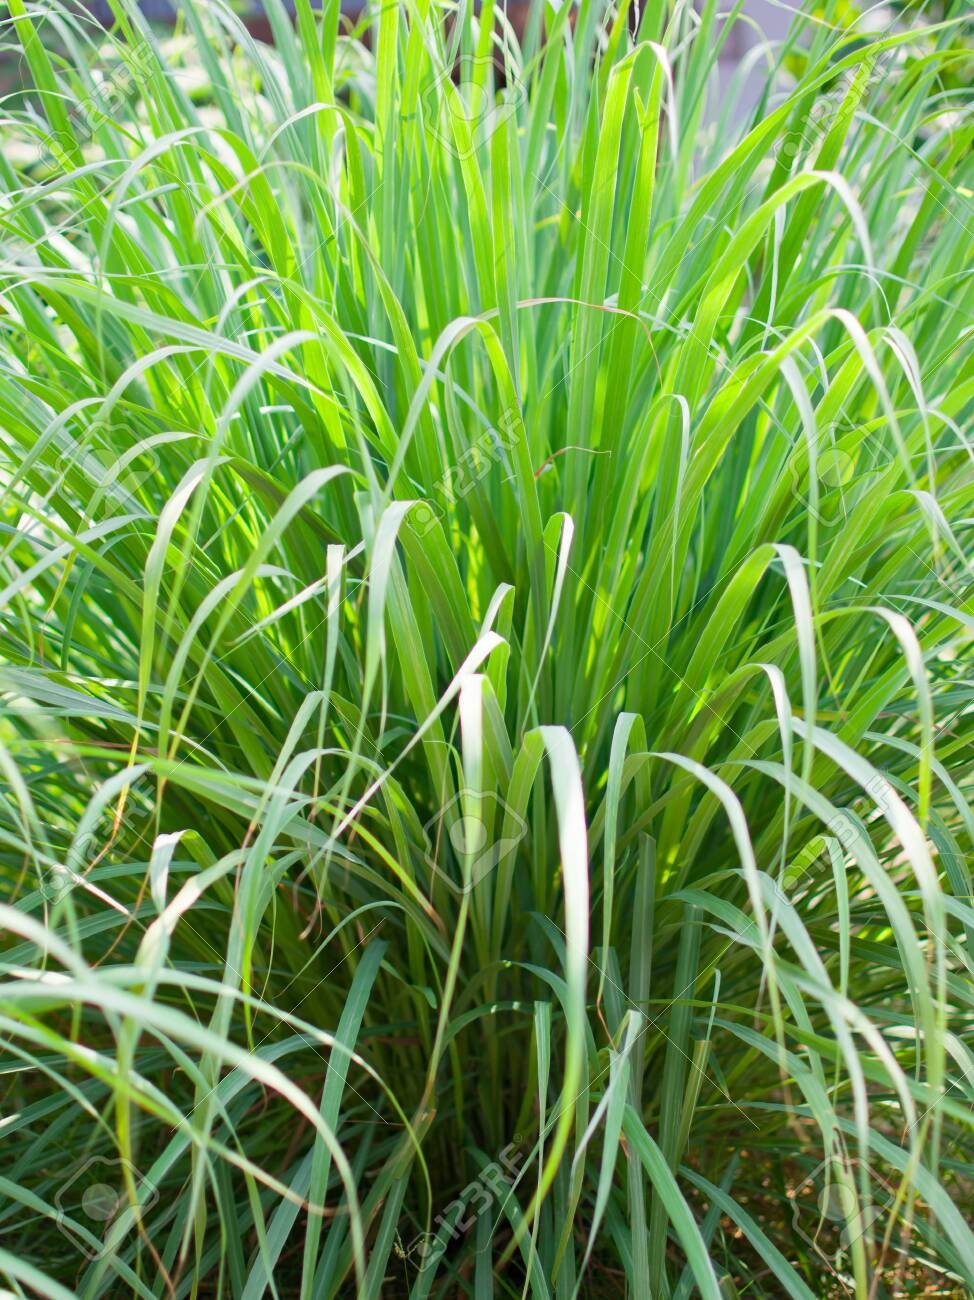 Lemongrass Or Lapine Or Lemon Grass Or West Indian Or Cymbopogon.. Stock  Photo, Picture And Royalty Free Image. Image 123381010.